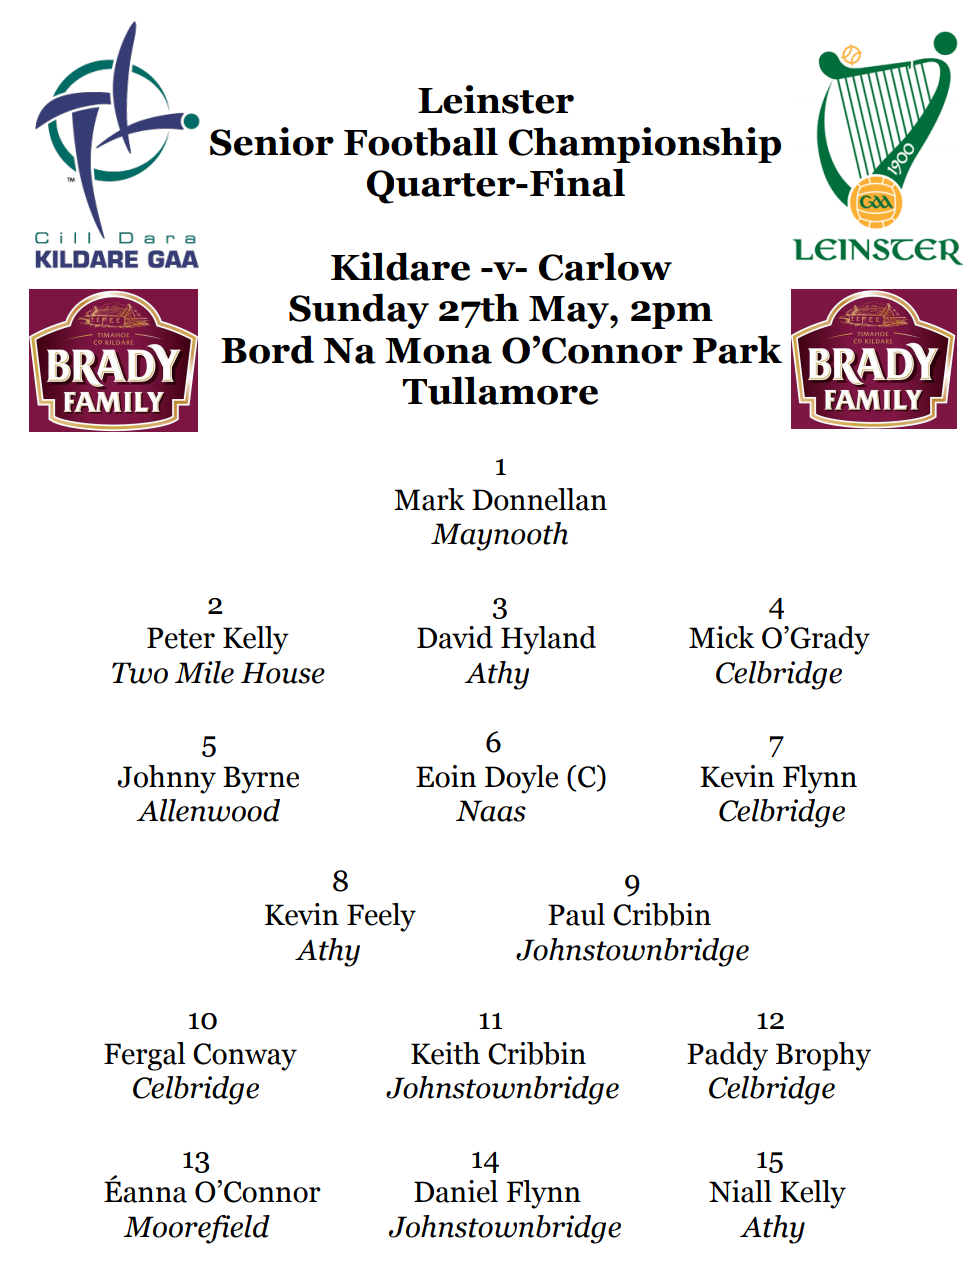 Team News: Leinster SFC Quarter Final Kildare v Carlow